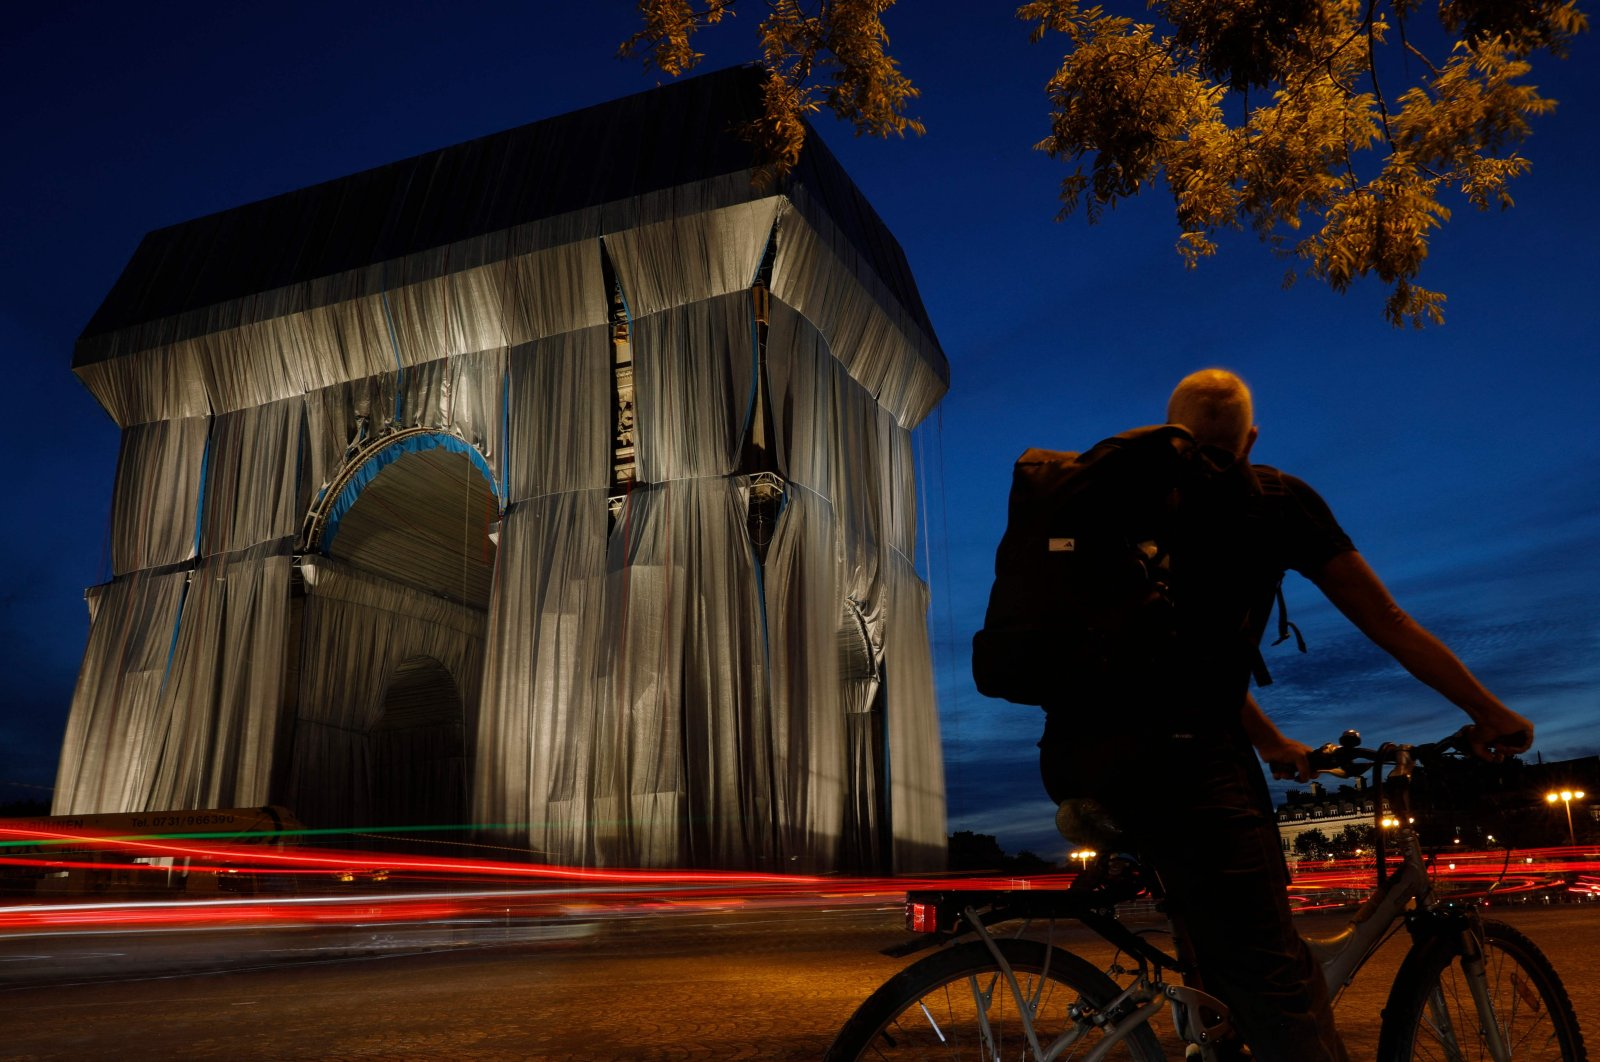 A cyclist looks at the Arc de Triomphe, in Paris, wrapped in silver-blue fabric as it was designed by the late artist Christo, Paris, France, Sept. 13, 2021. (AFP Photo)